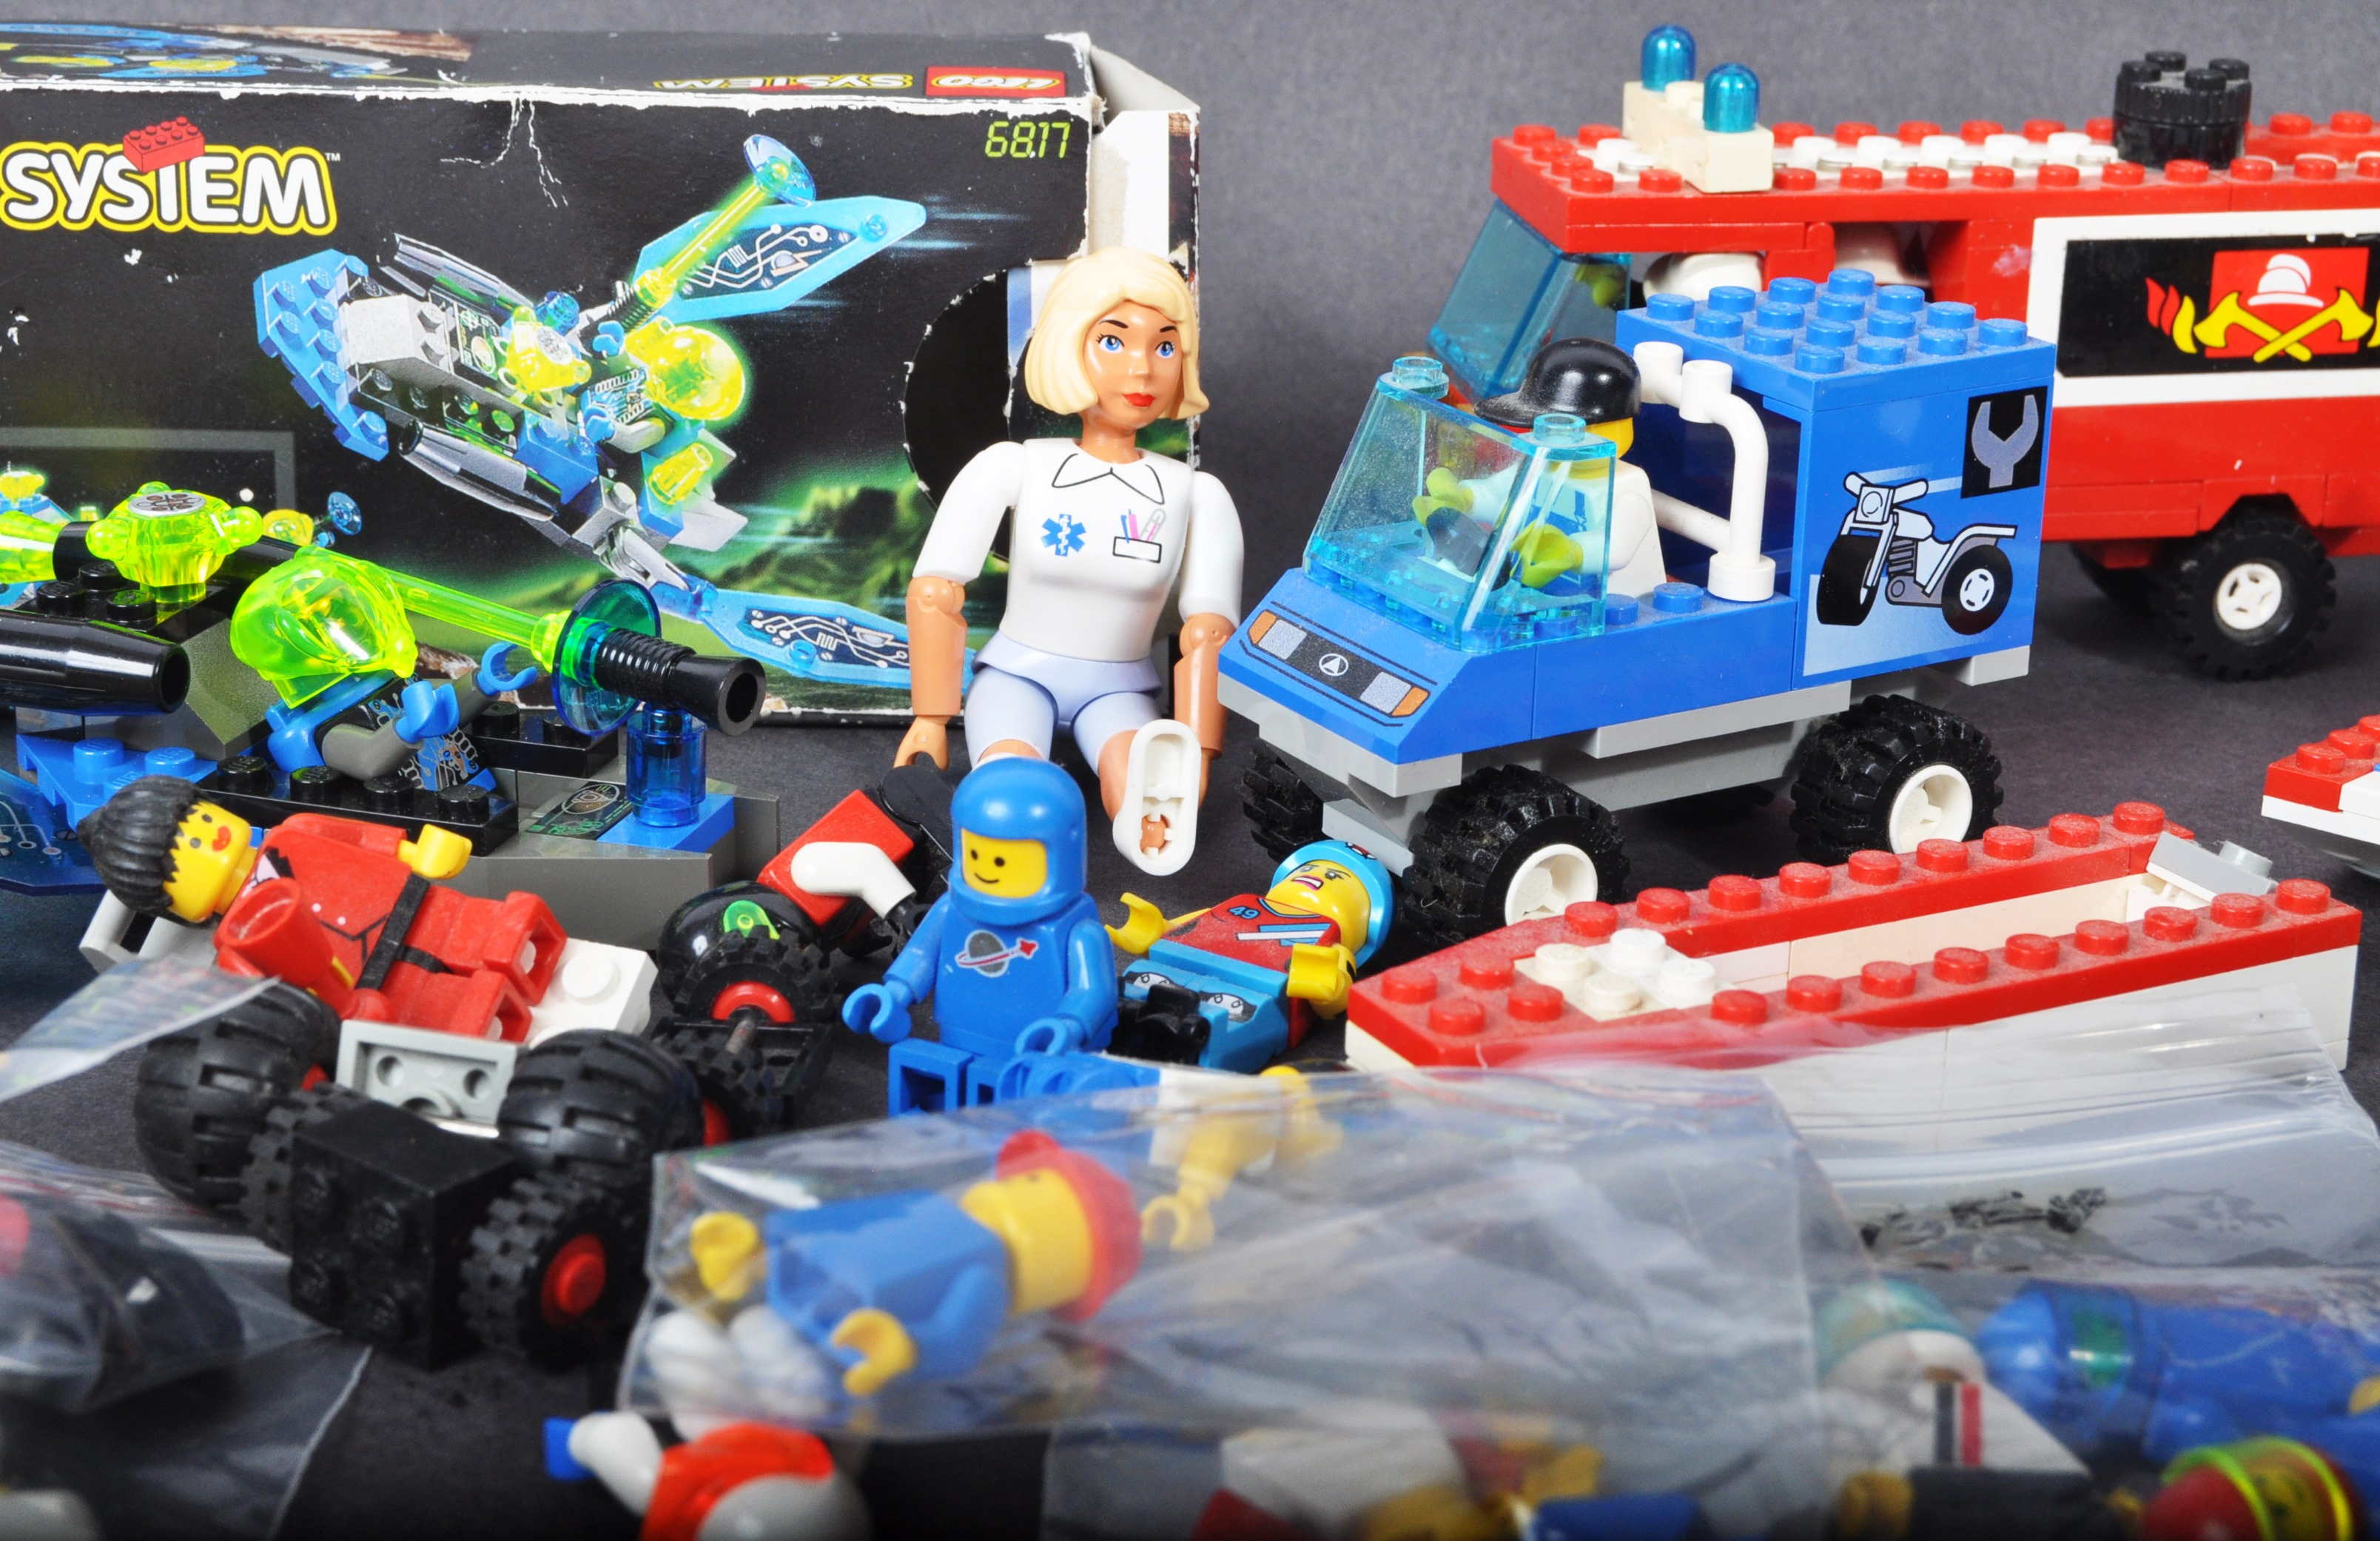 COLLECTION OF ASSORTED VINTAGE MINI LEGO SETS & MINIFIGURES - Image 5 of 10